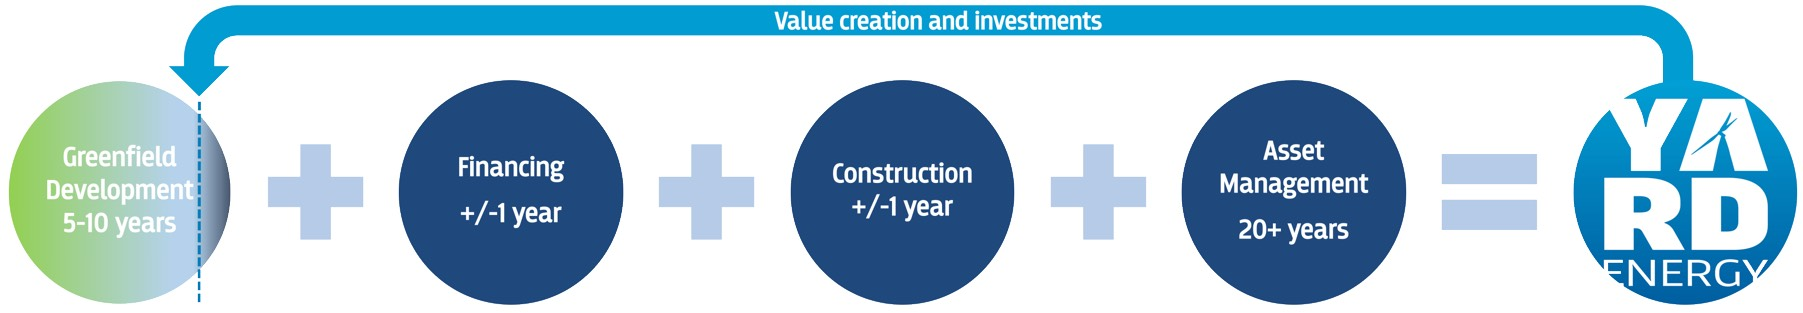 Value creation and investments